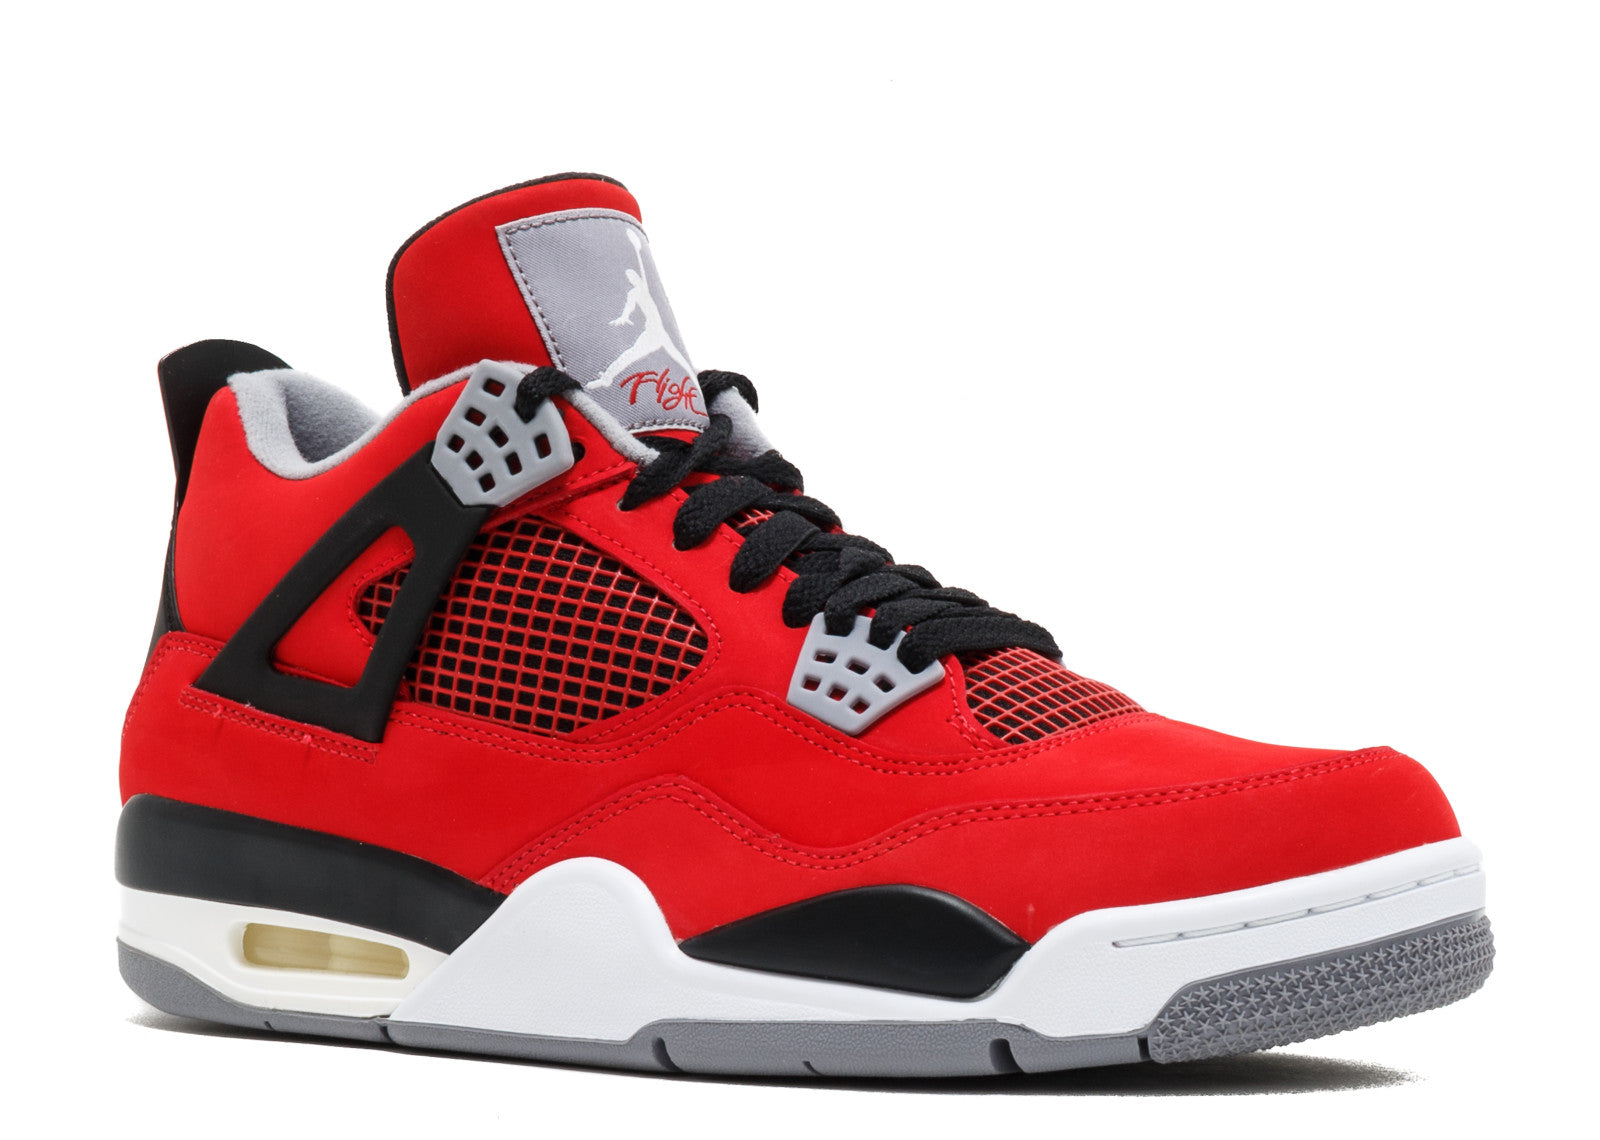 huge discount f2dd8 8d018 Air Jordan 4 Retro Toro bravo 308497 603